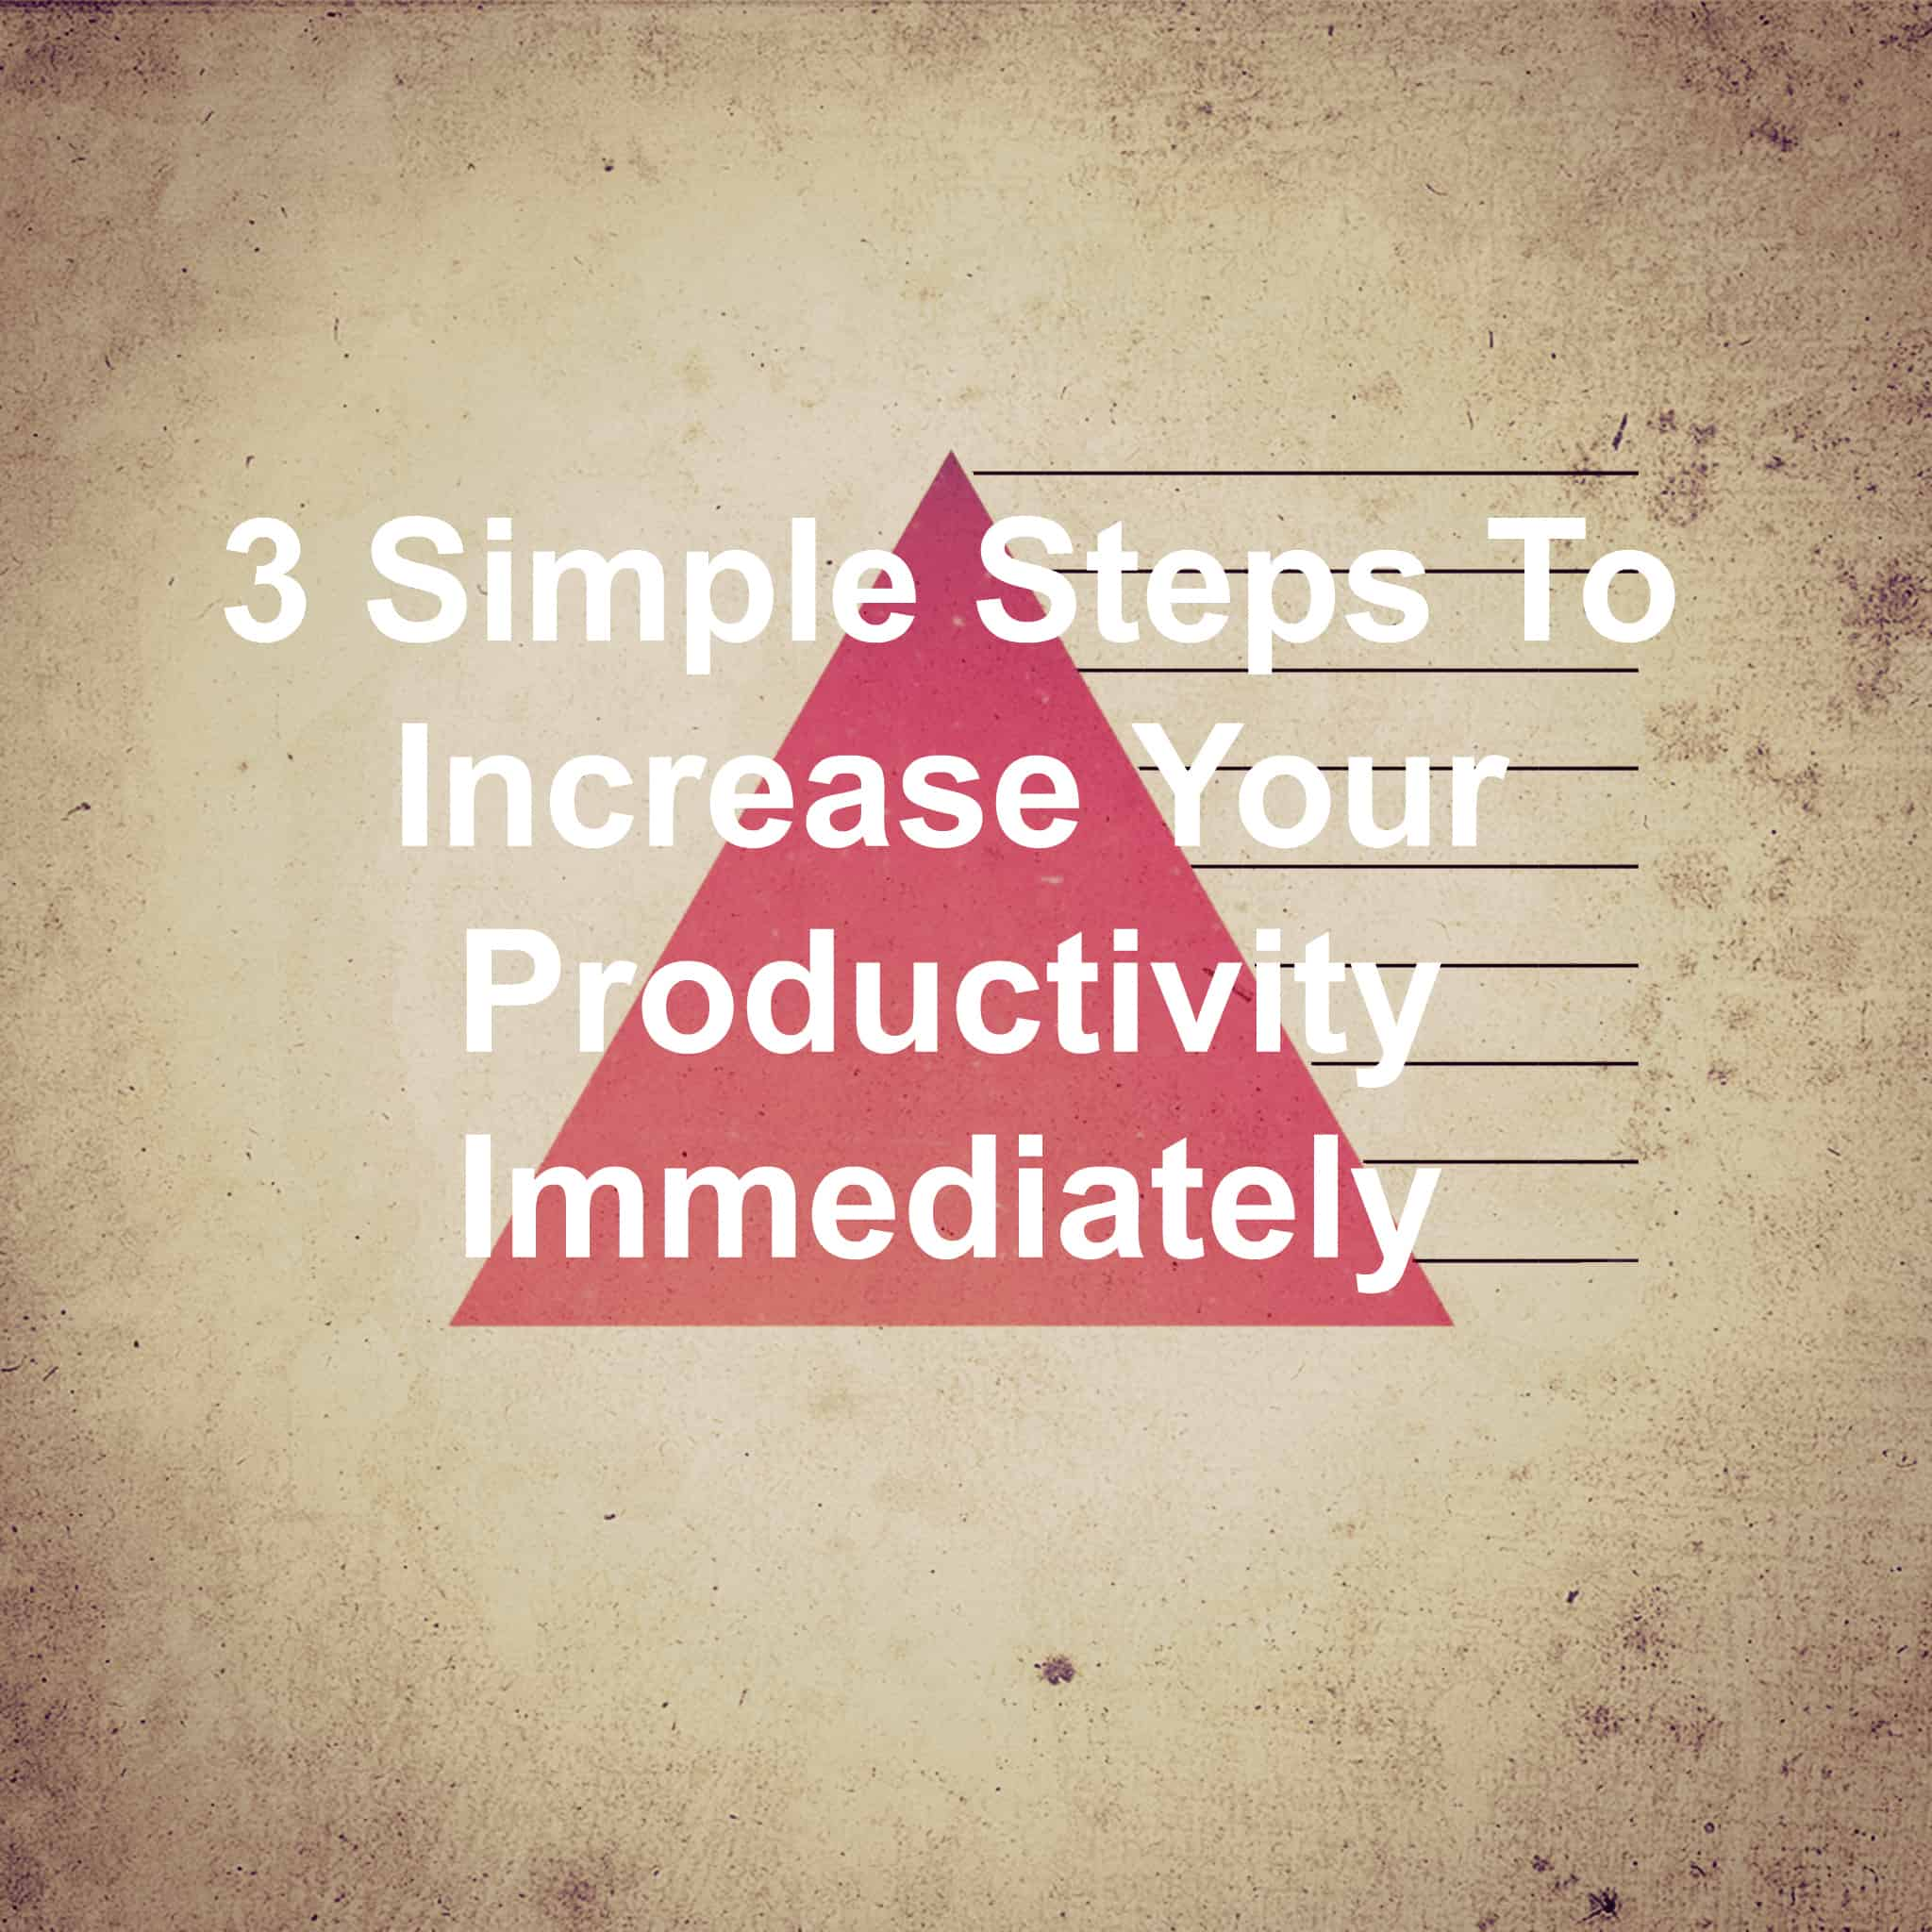 How to increase your productivity immediately